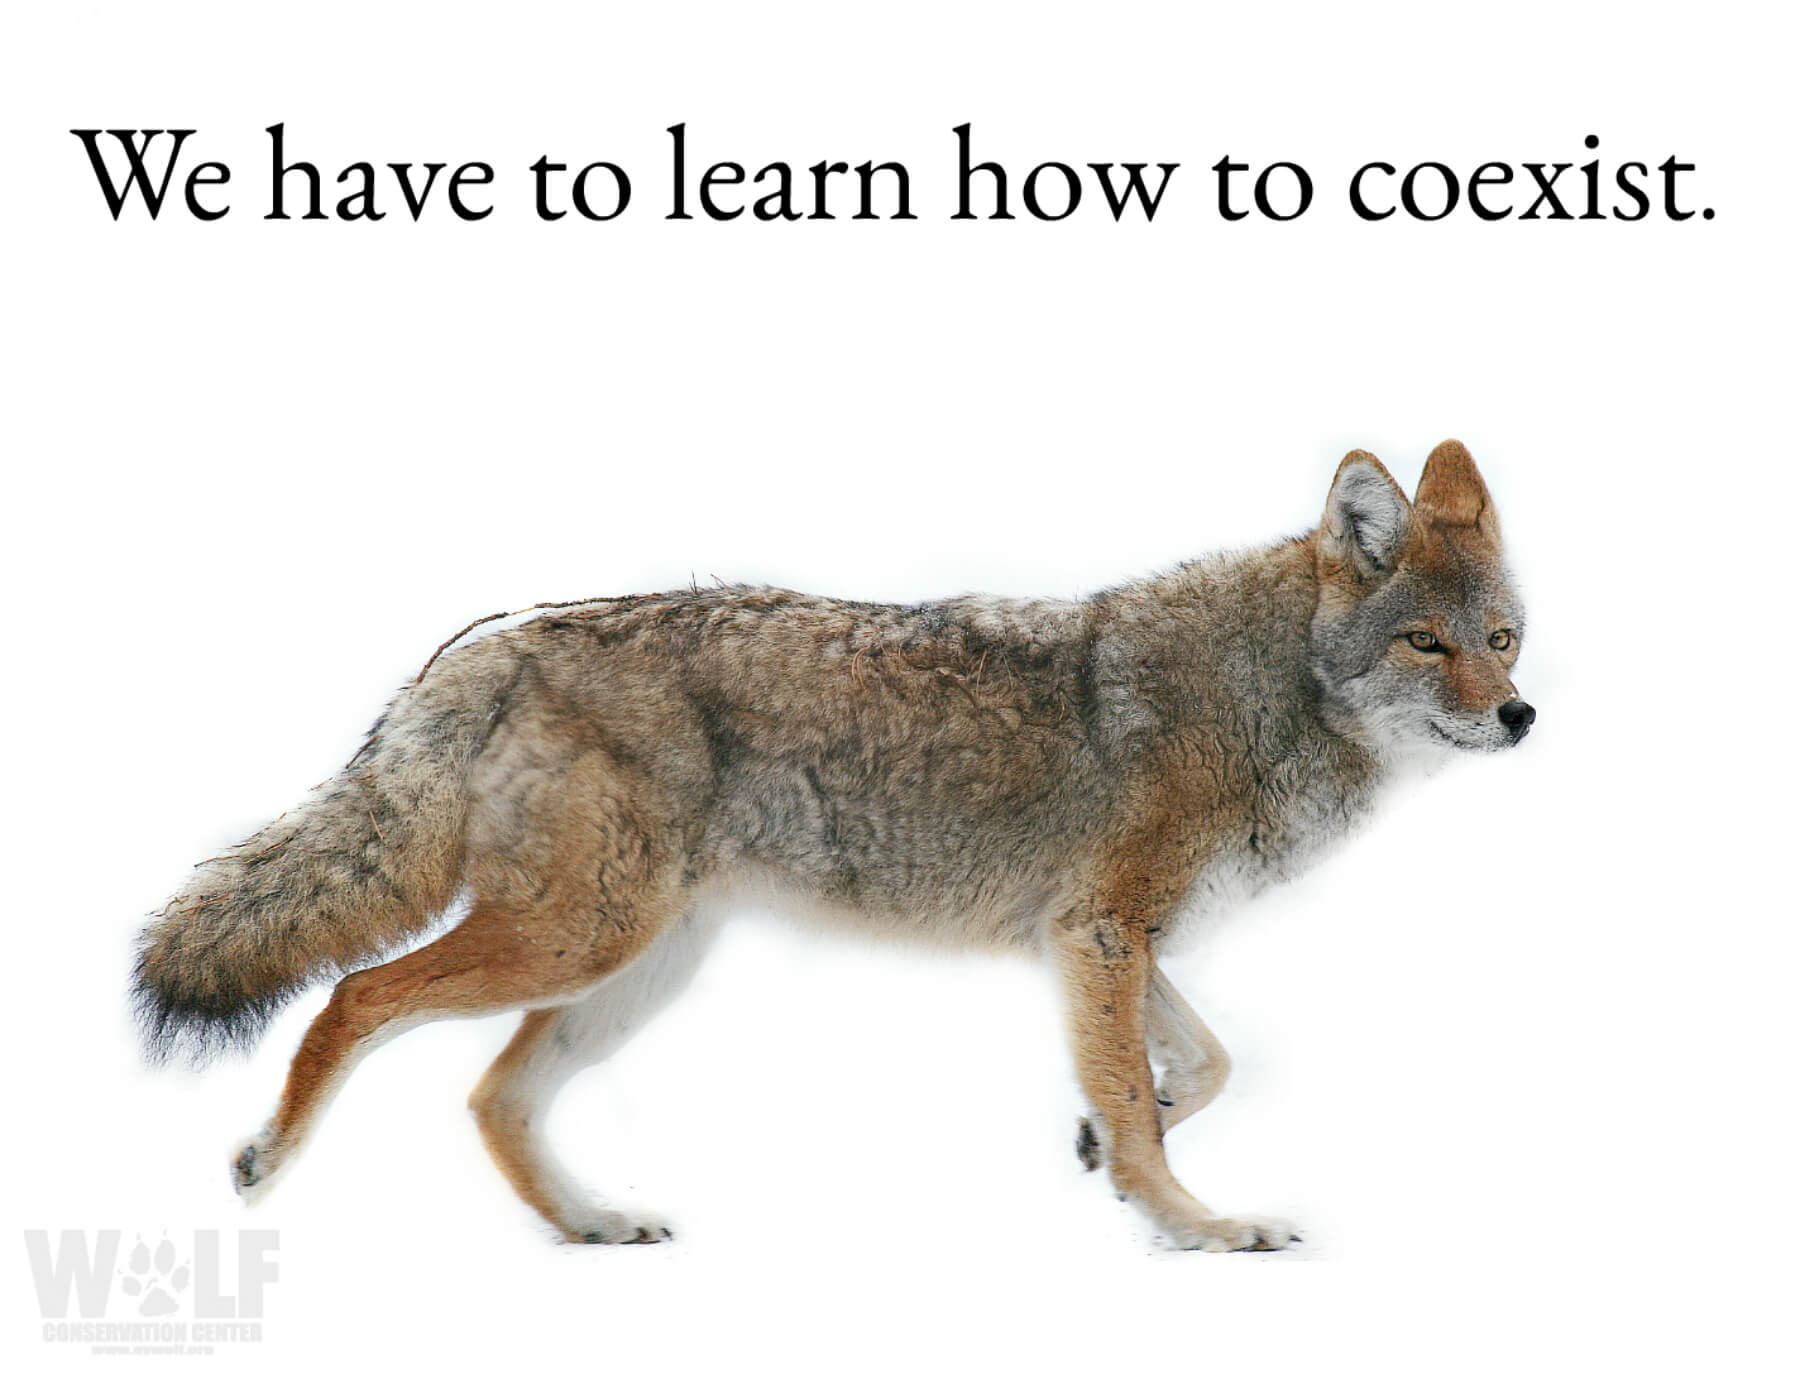 WCC_Coyote_coexist